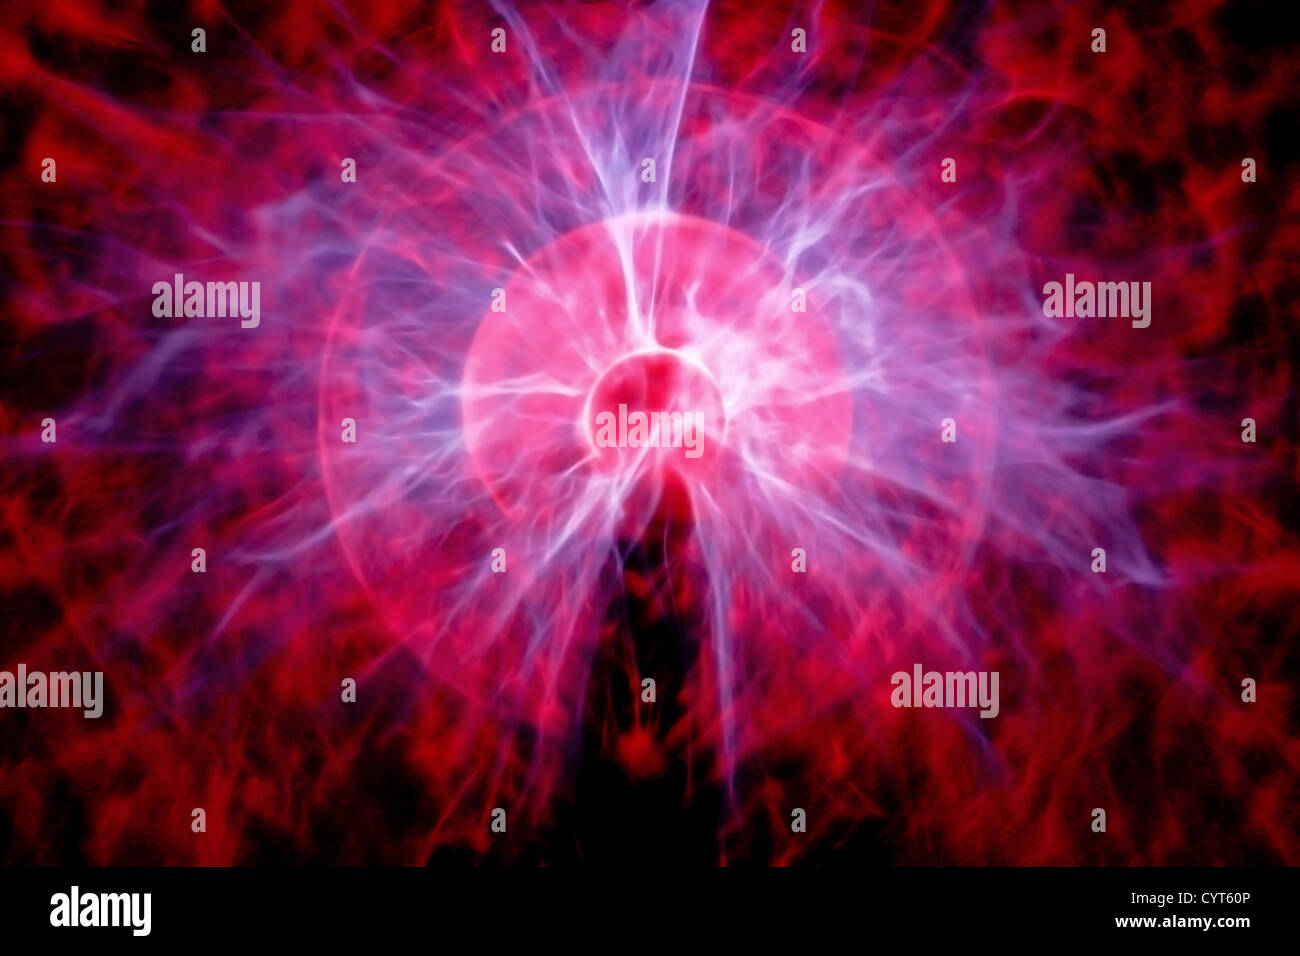 Particle explosion alike artistic creation for background - Stock Image